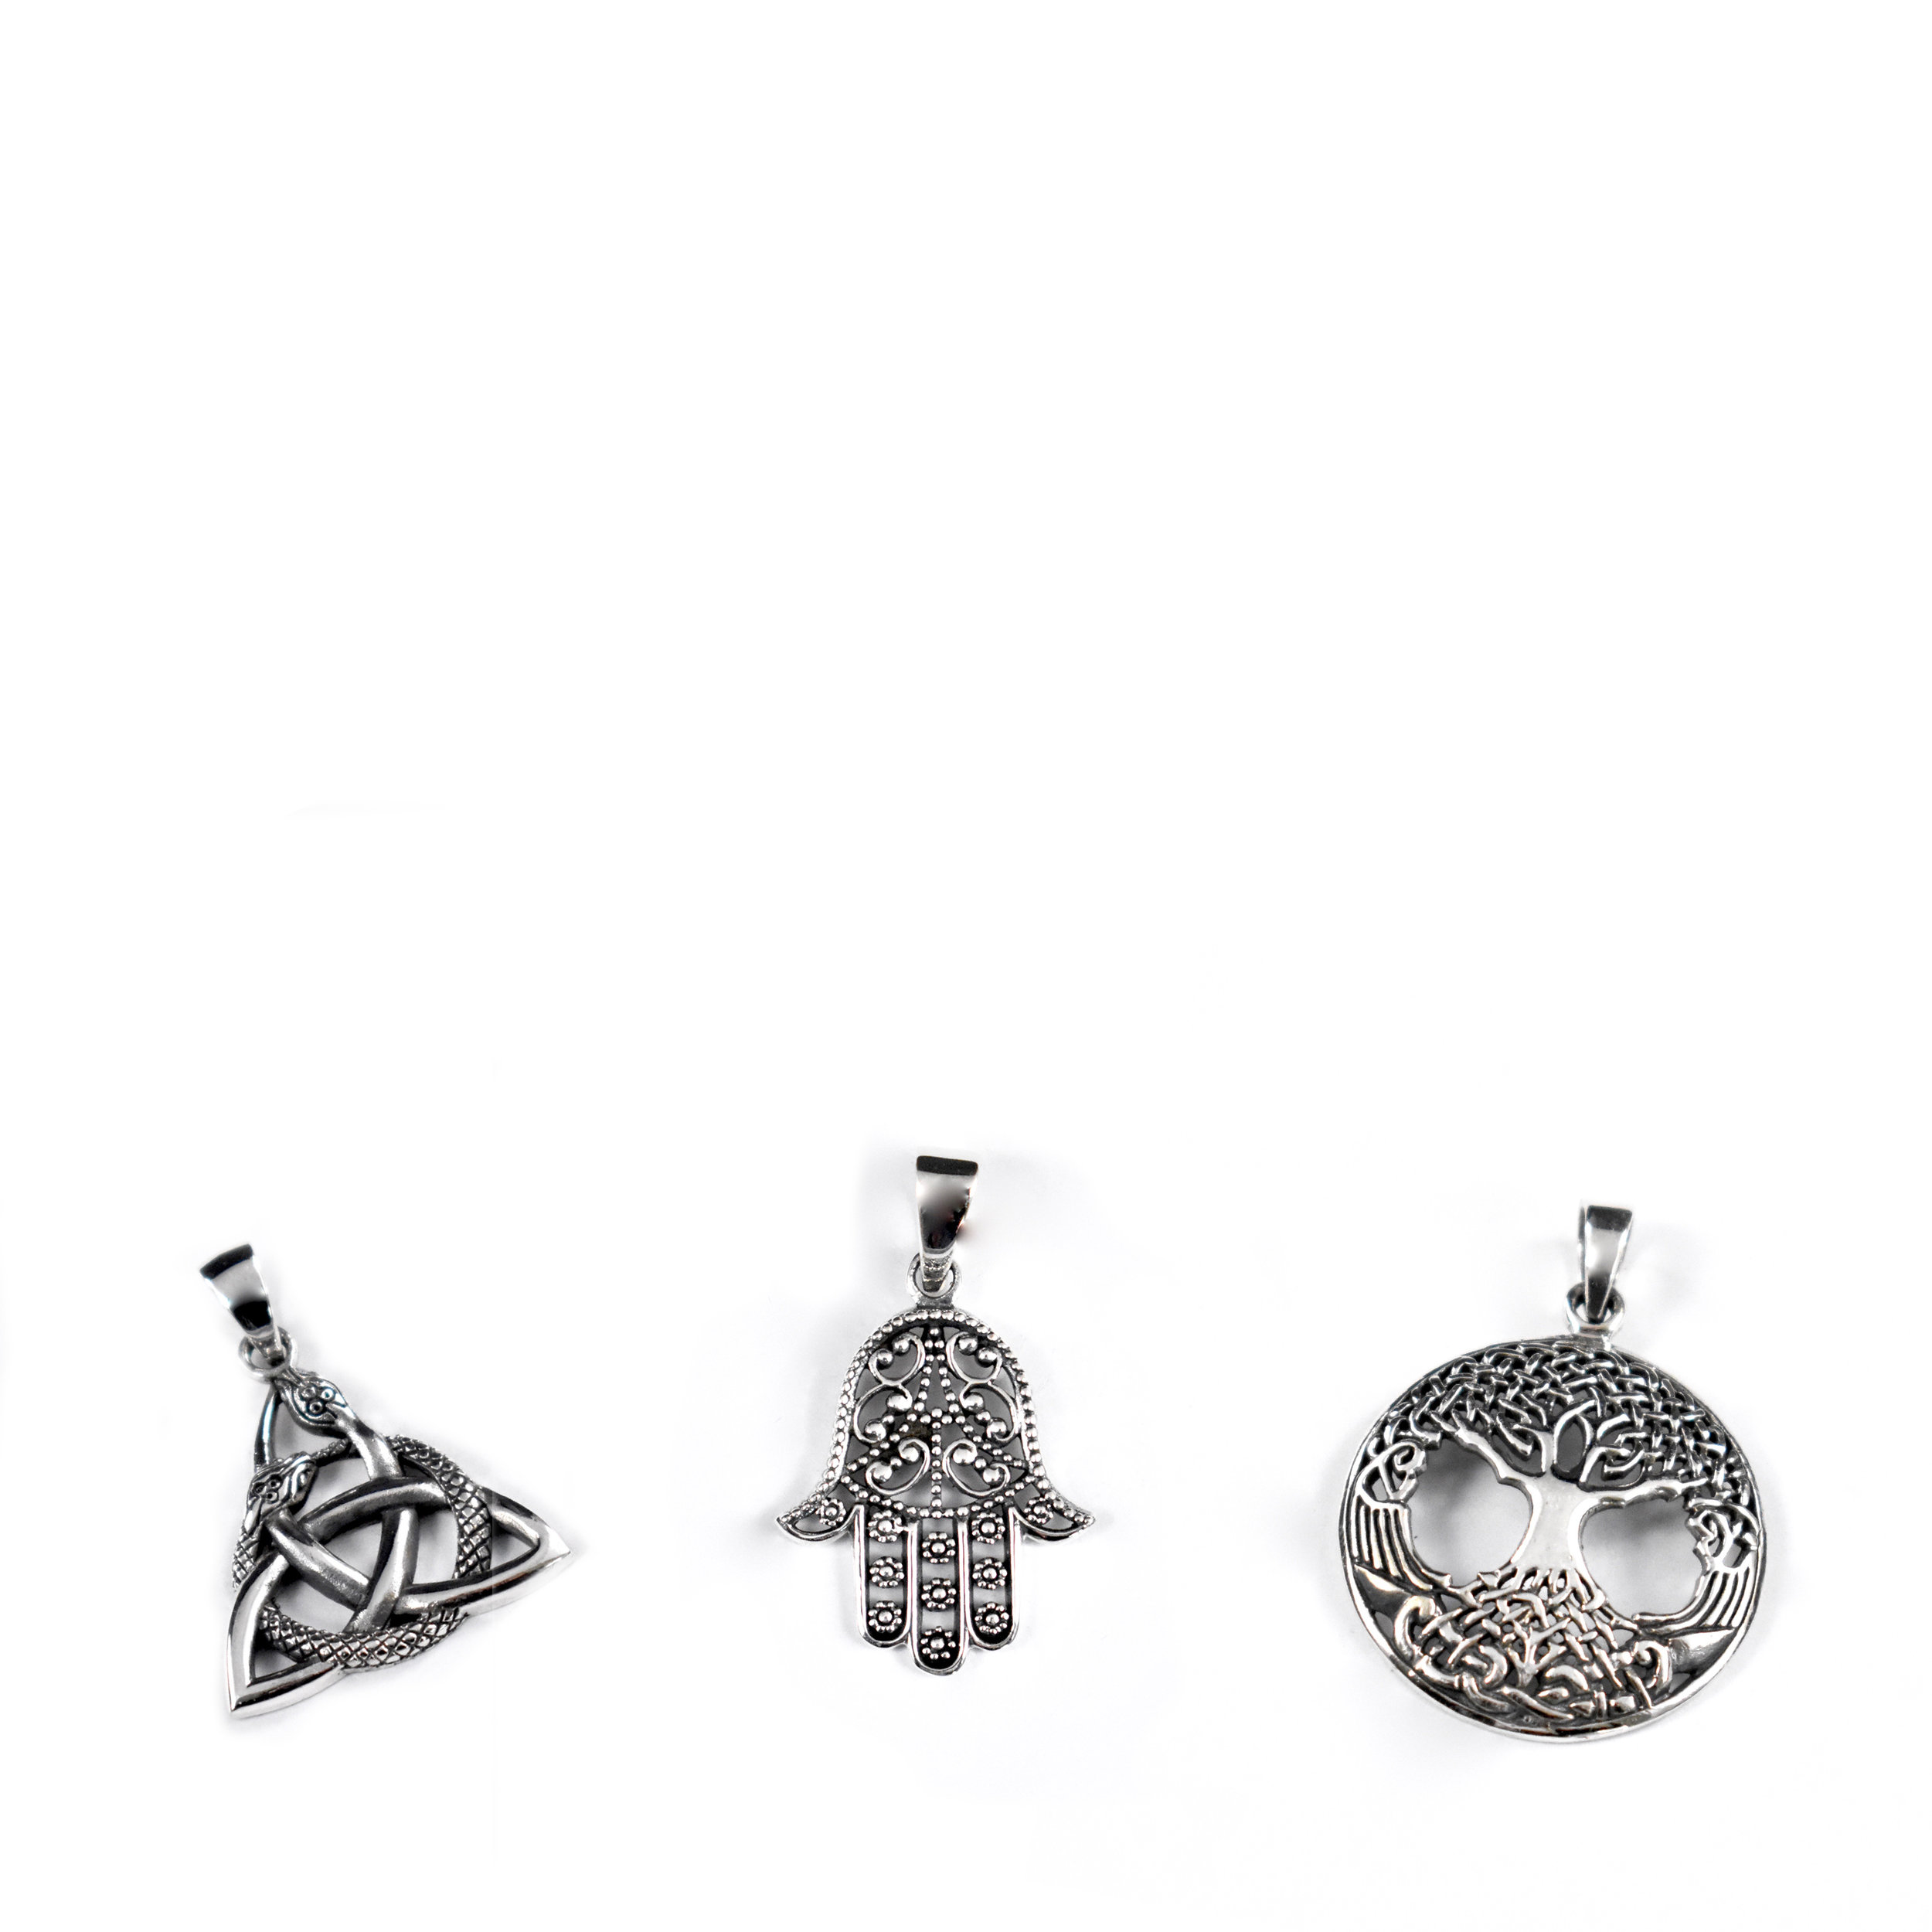 Shop Silver Pendants - 925 Sterling Silver Adornments